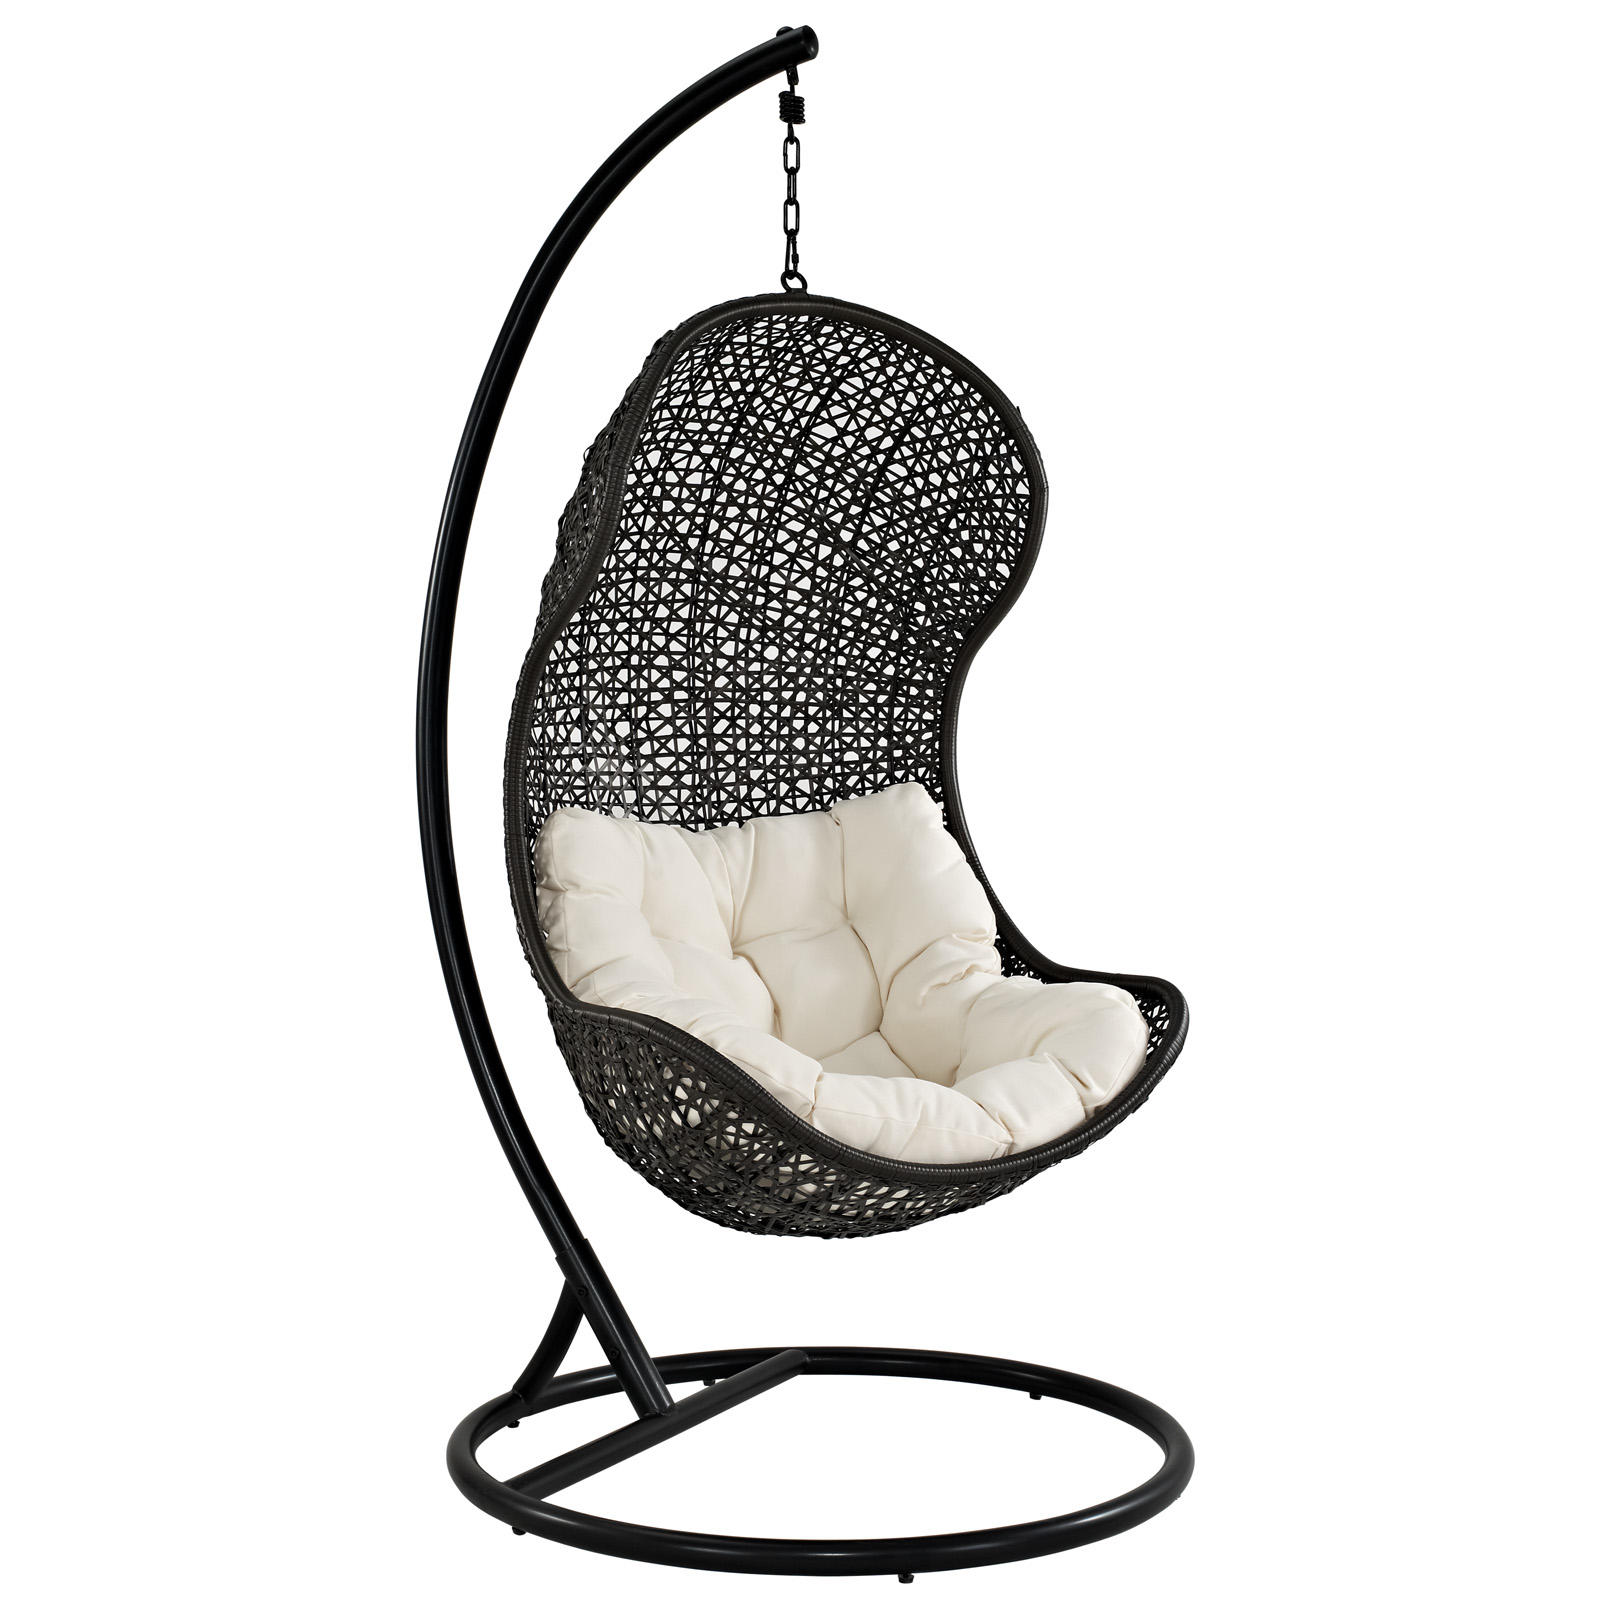 Image of Parlay Lounge Chair